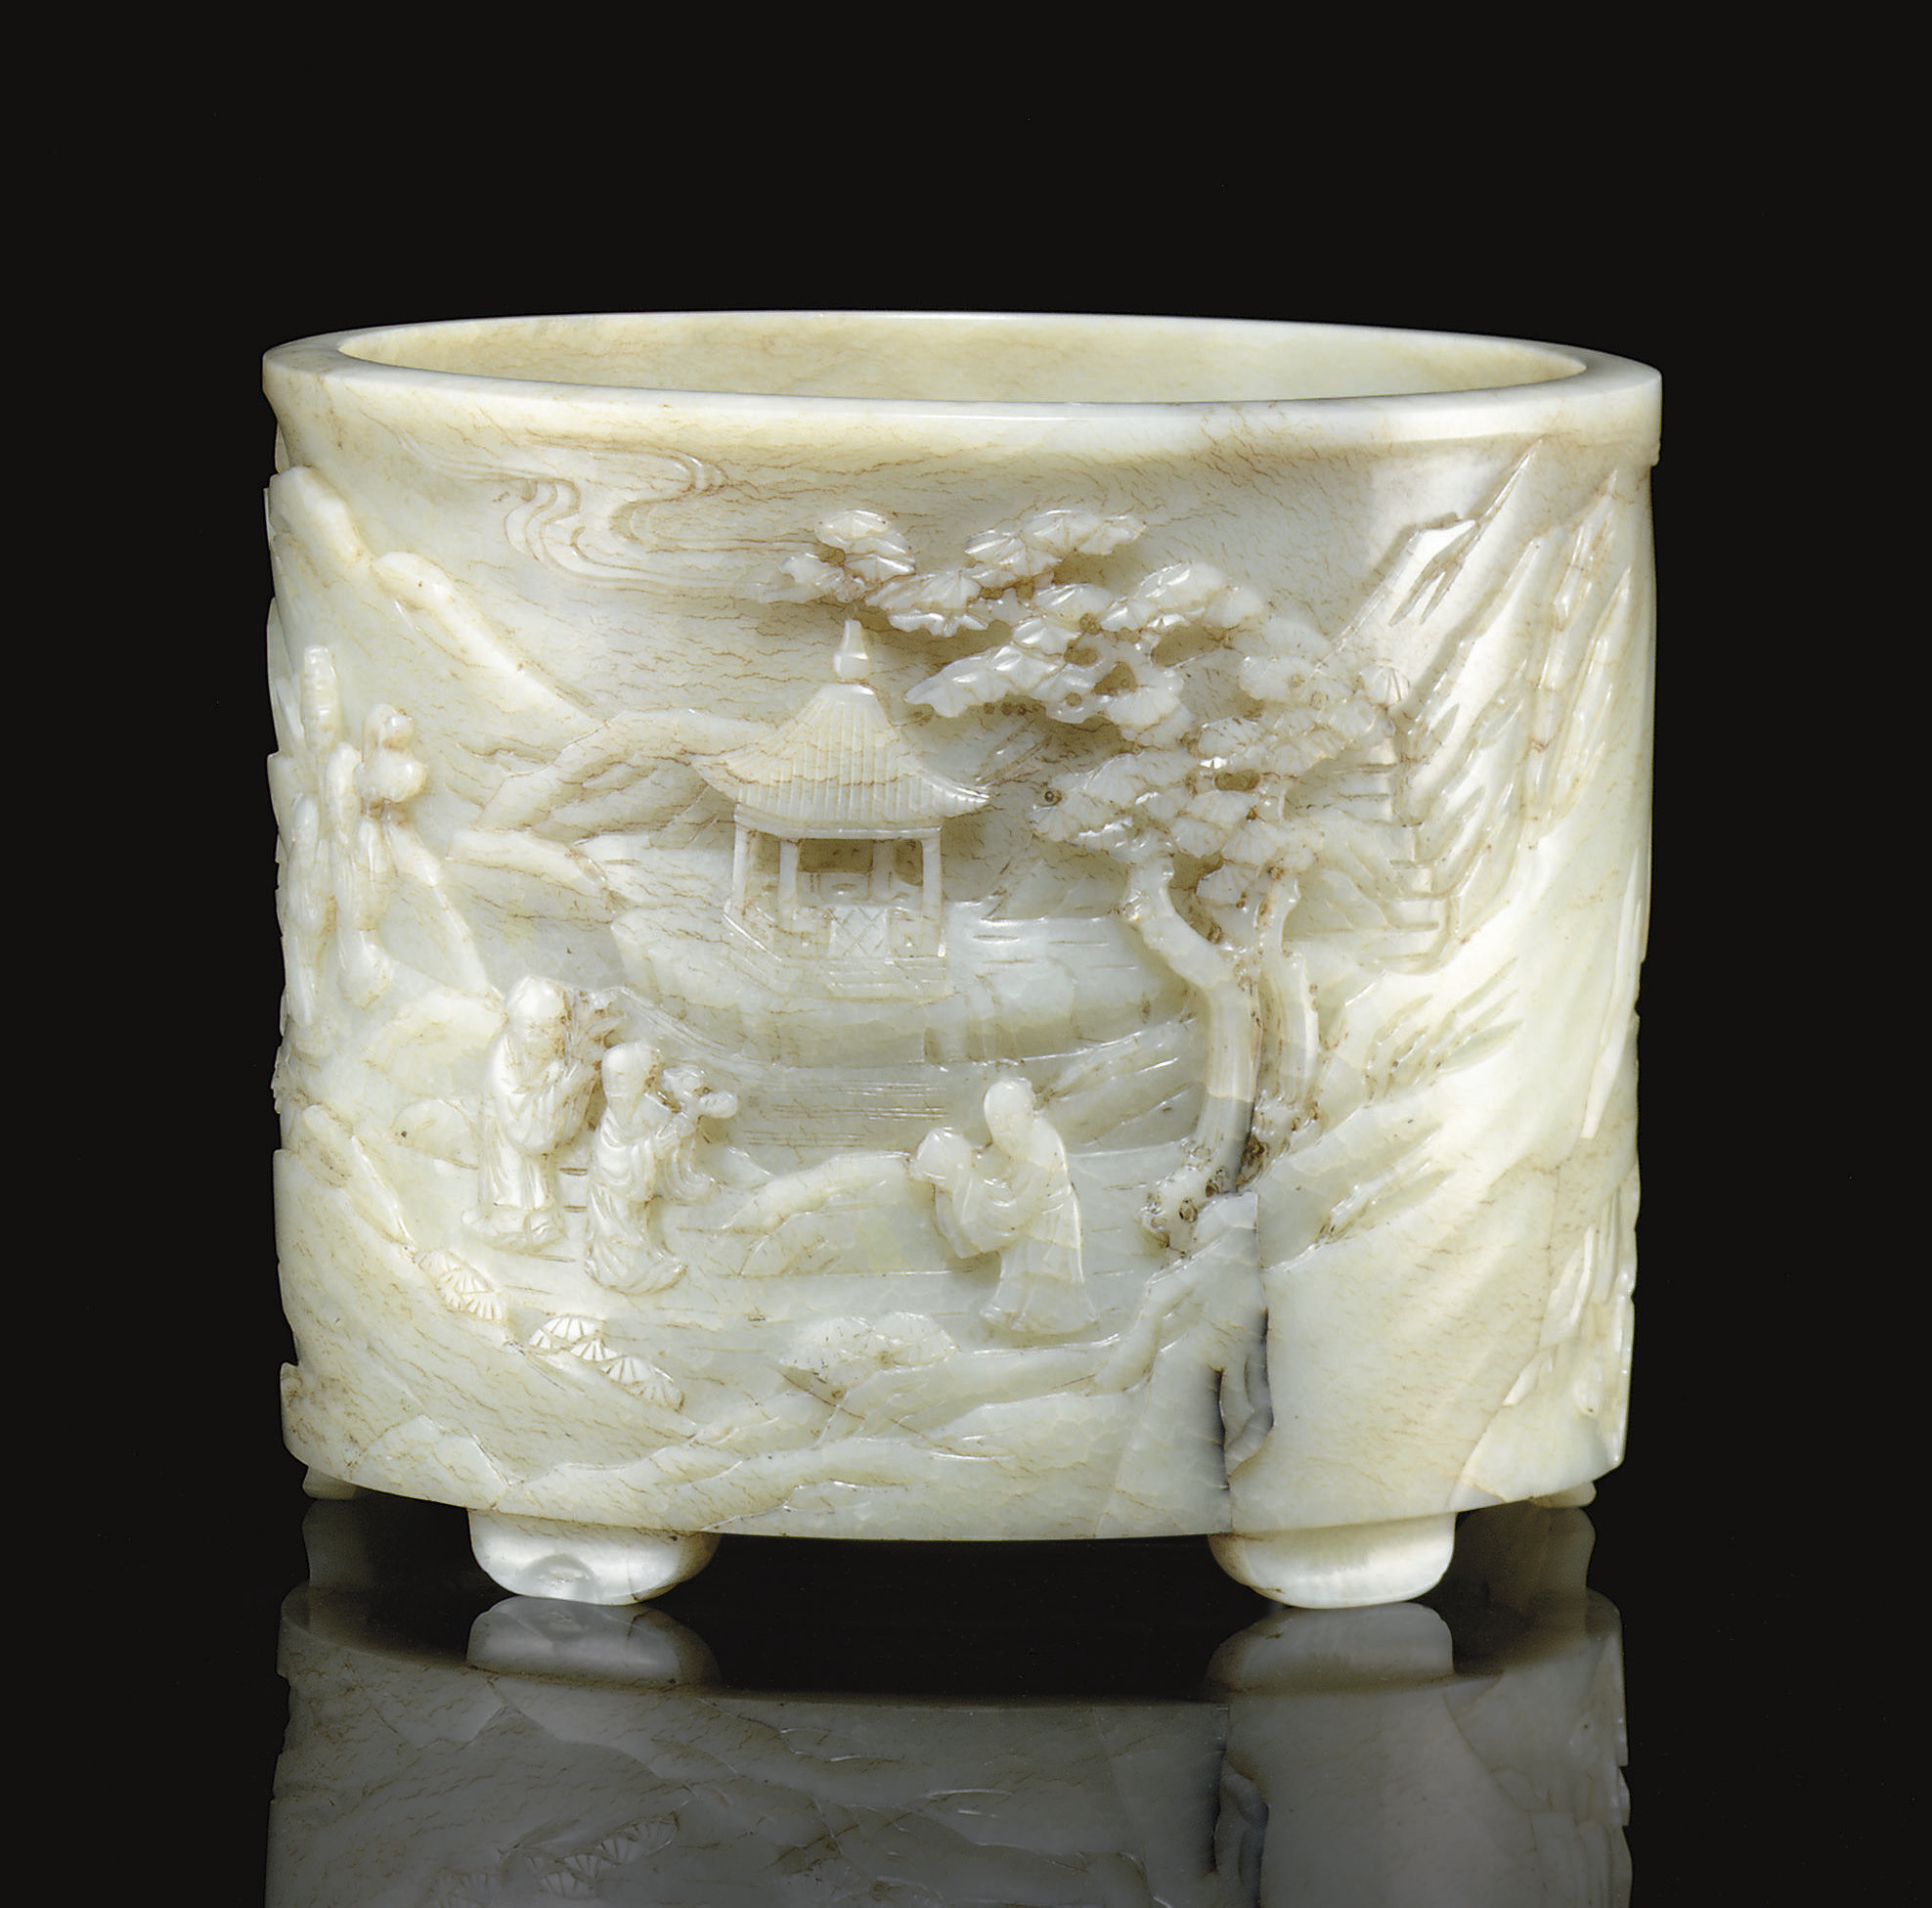 A RARE LARGE WELL-CARVED PALE GREENISH-WHITE JADE BRUSHPOT, BITONG